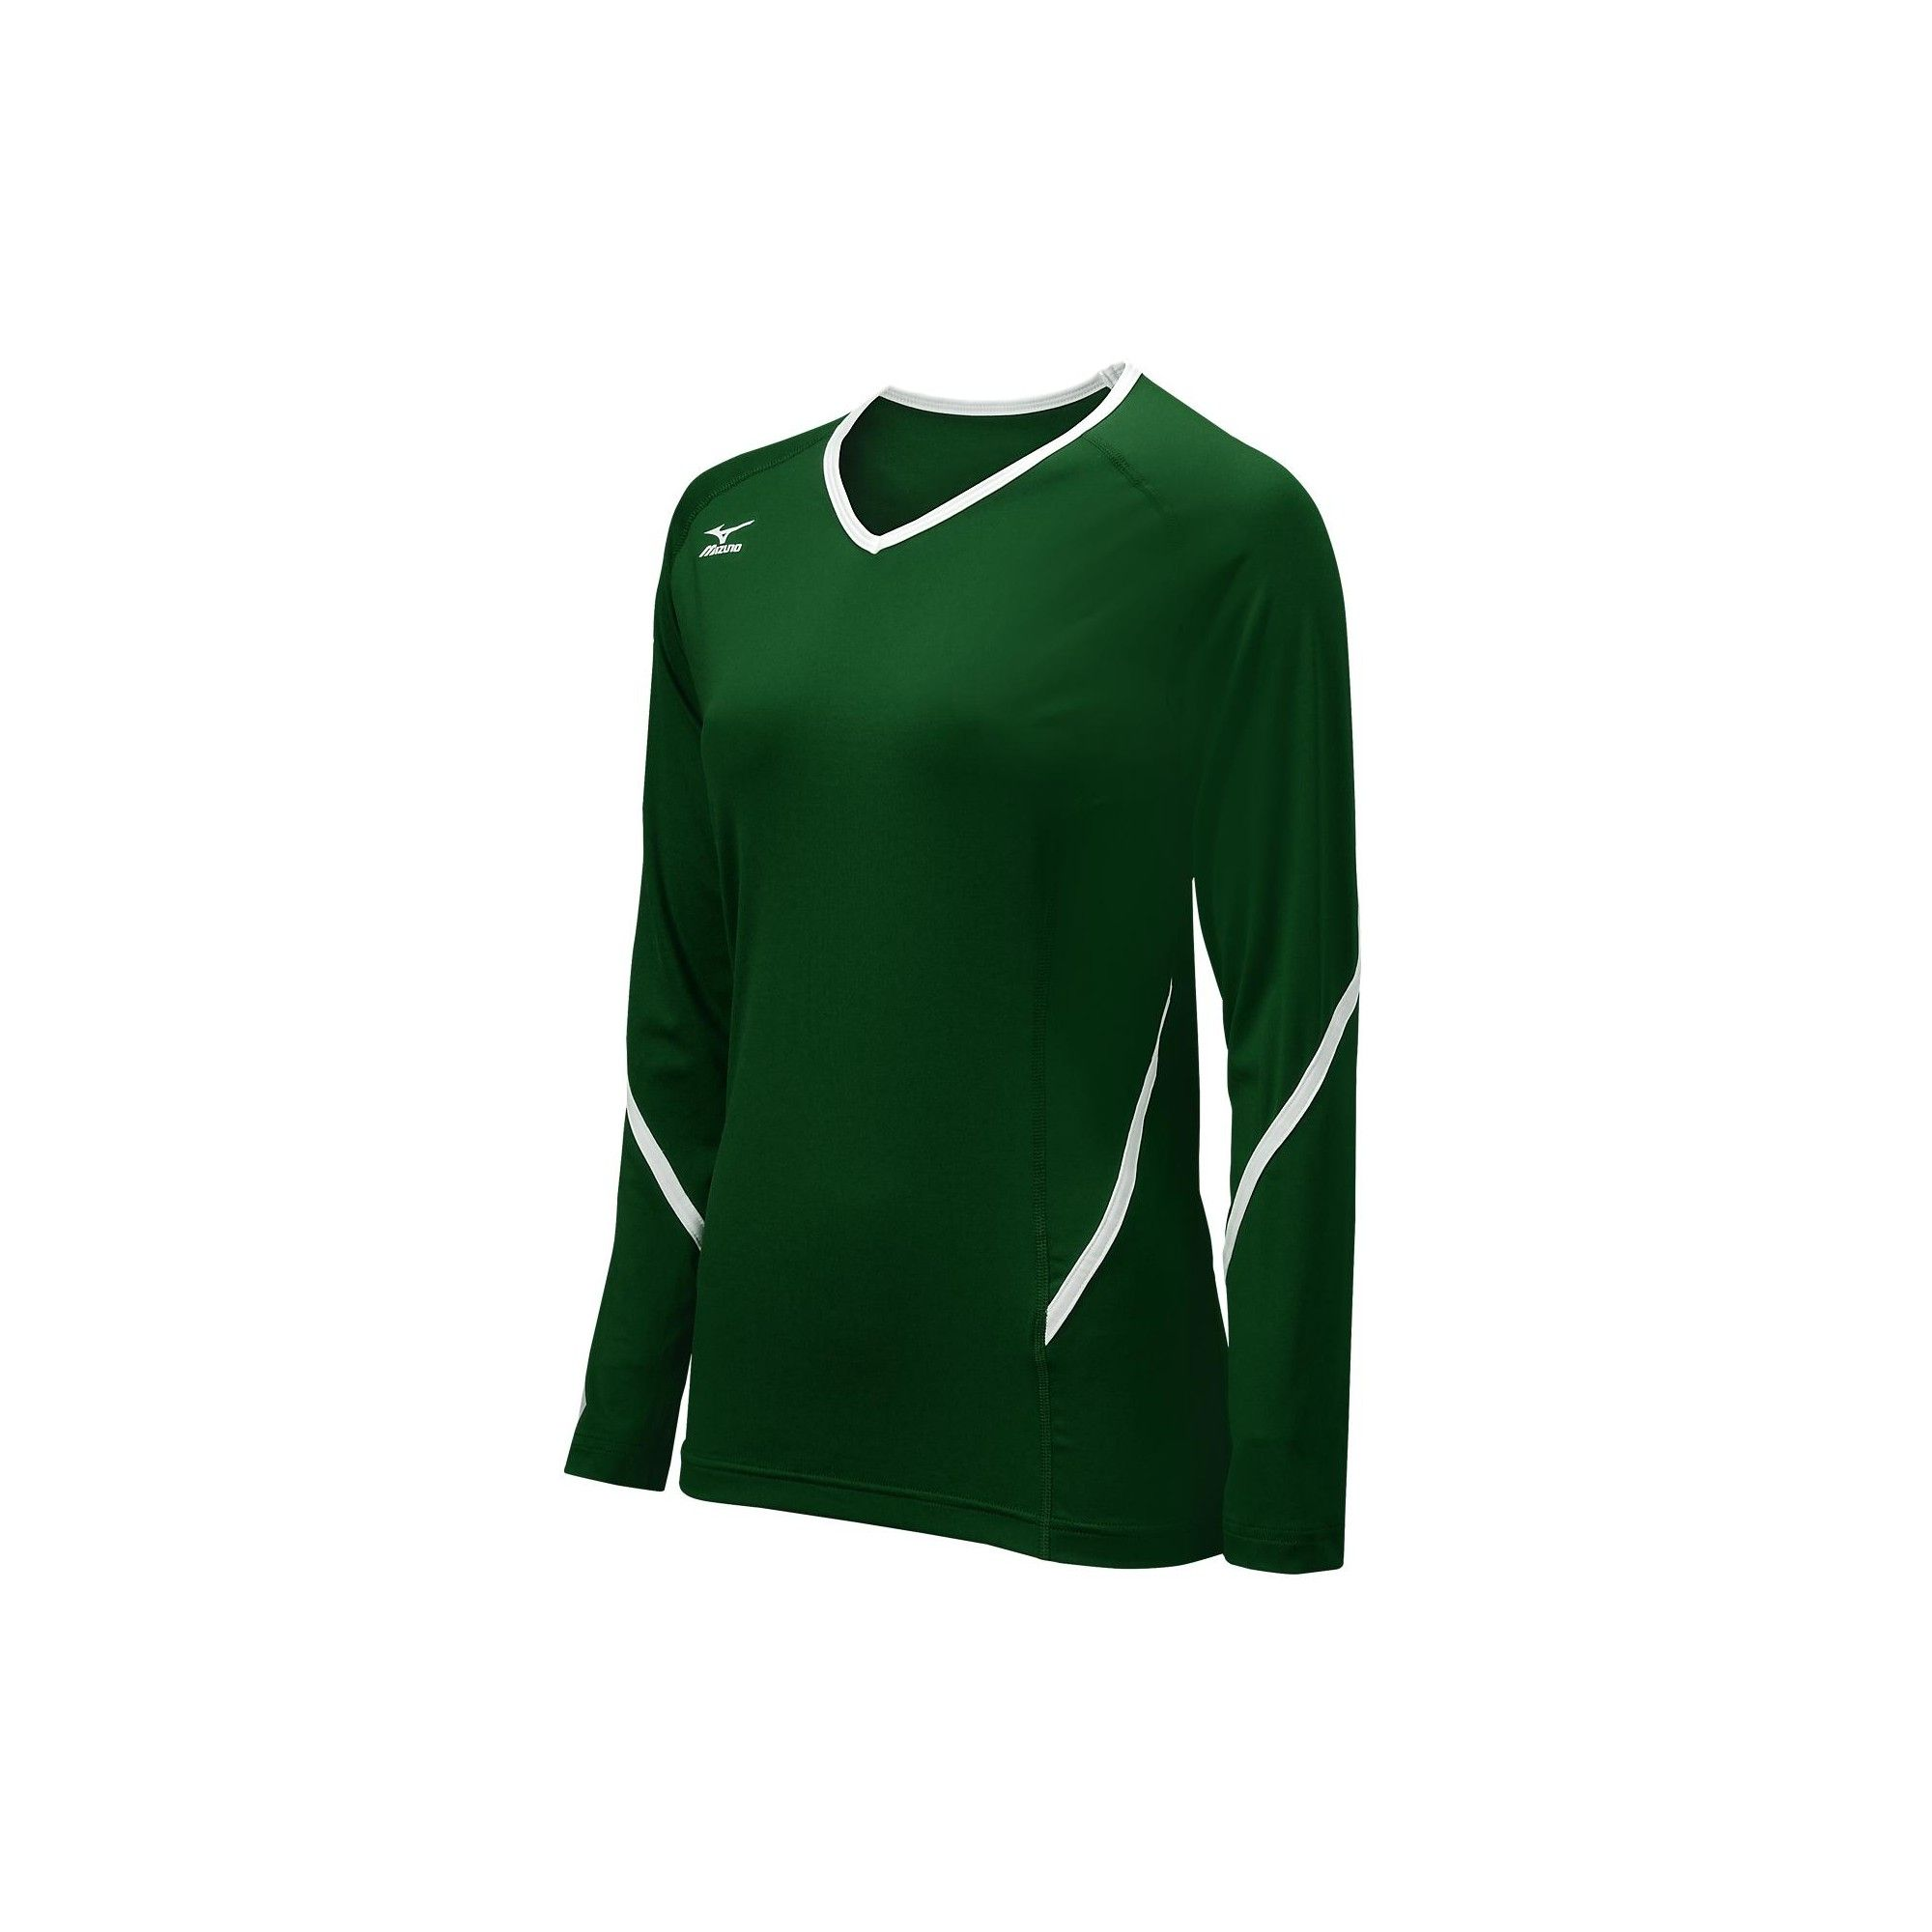 Mizuno Women S Techno Generation Long Sleeve Volleyball Jersey Size Medium In Color Forest White 4100 Long Sleeve Tshirt Men Long Sleeve Jersey Long Sleeve